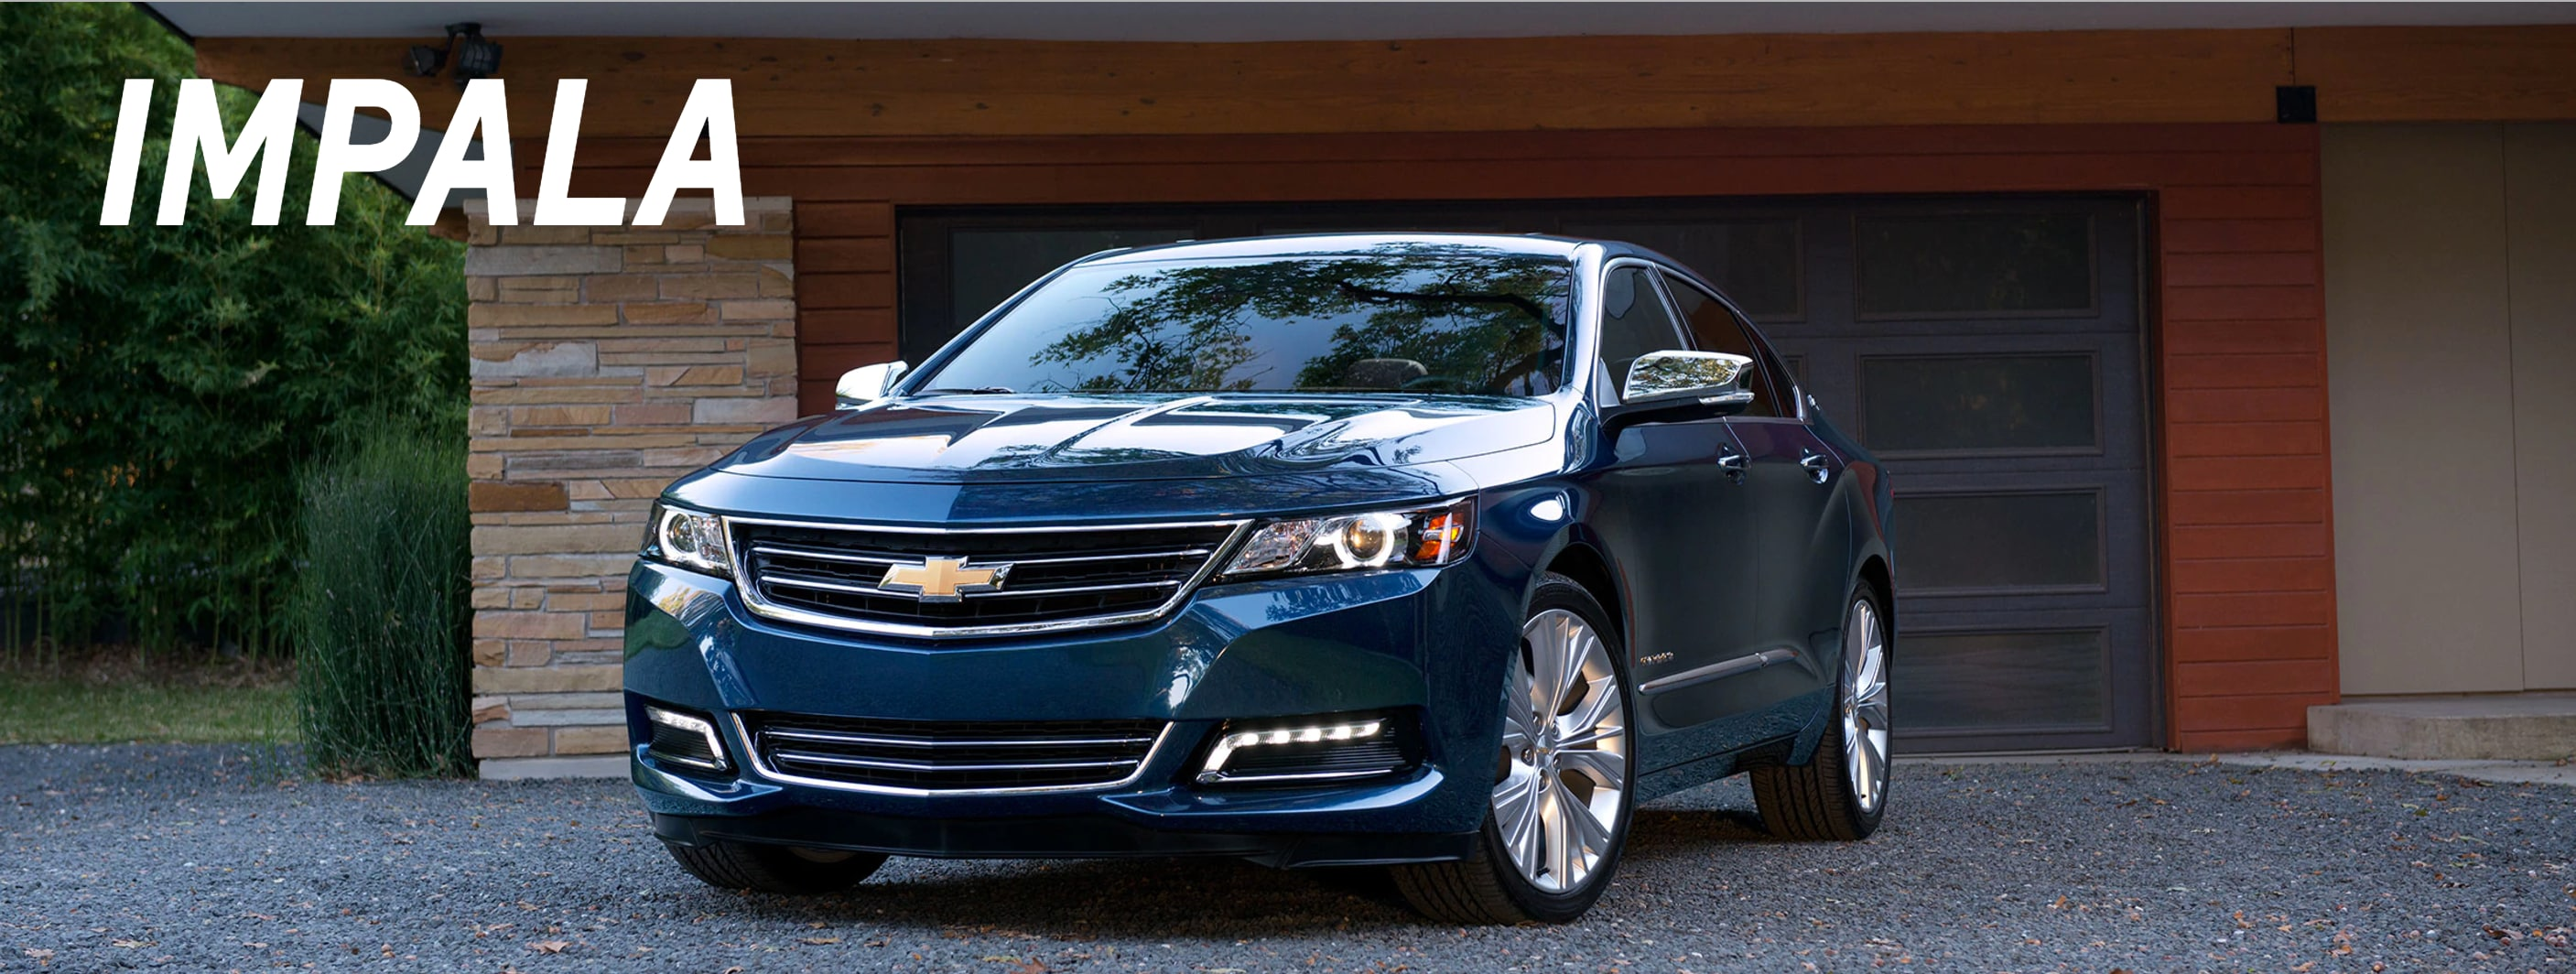 2017 Chevrolet Impala For Sale In Norman, Oklahoma | Landers Chevrolet Of  Norman